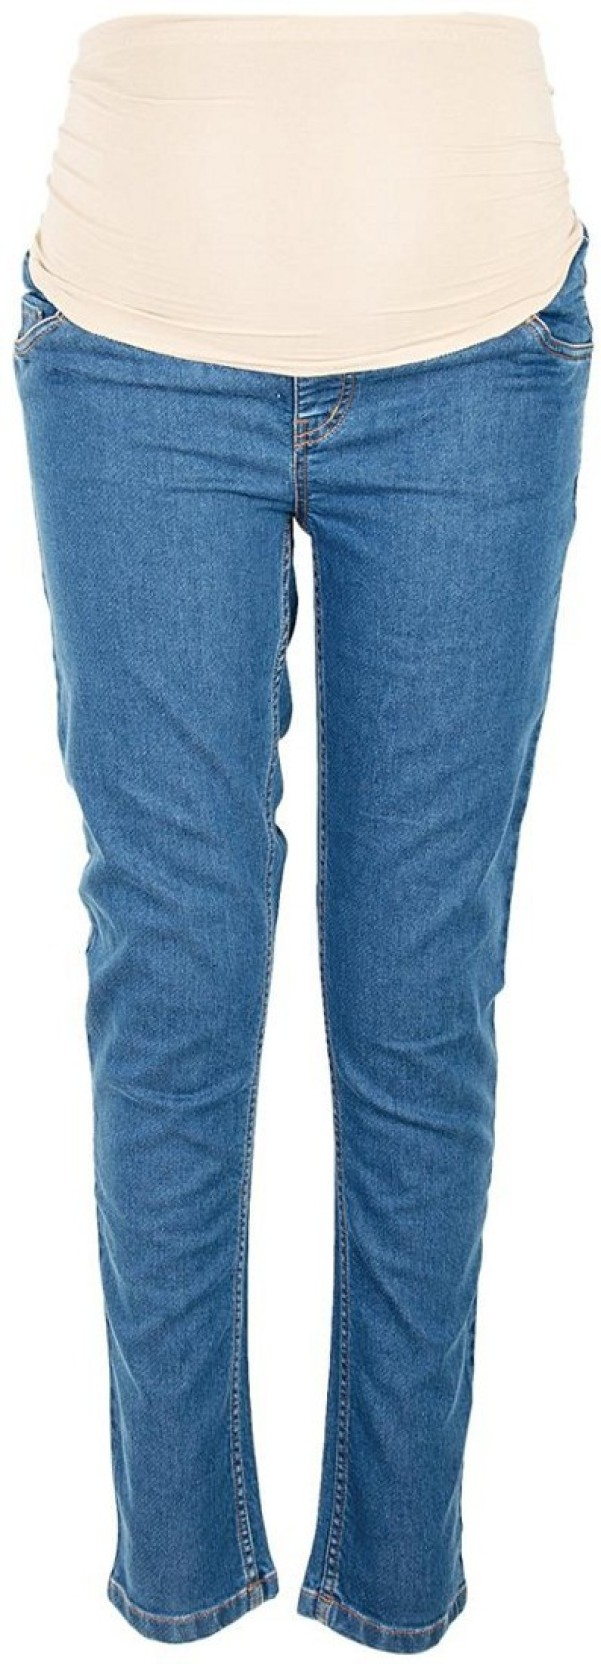 578f8d27b36c5 Kriti Western Maternity Regular Women's Blue Jeans - Buy Blue Kriti ...